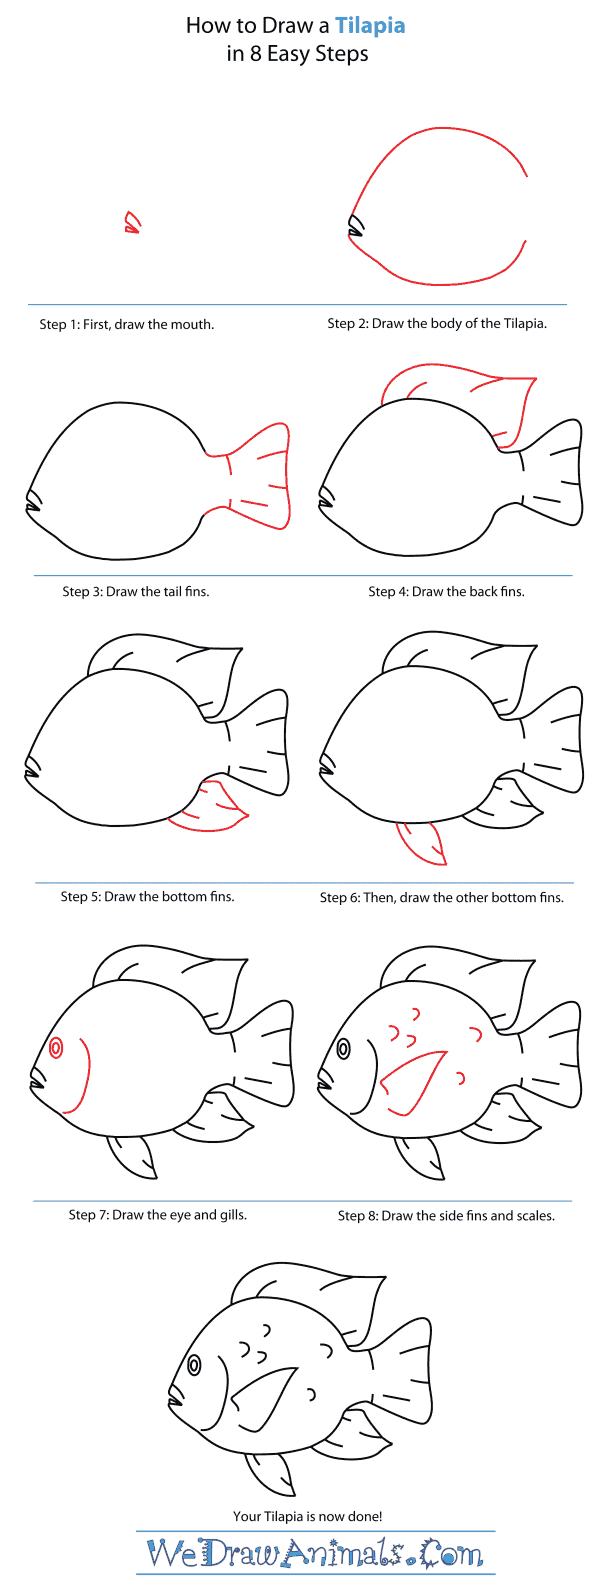 How To Draw A Tilapia  Stepbystep Tutorial